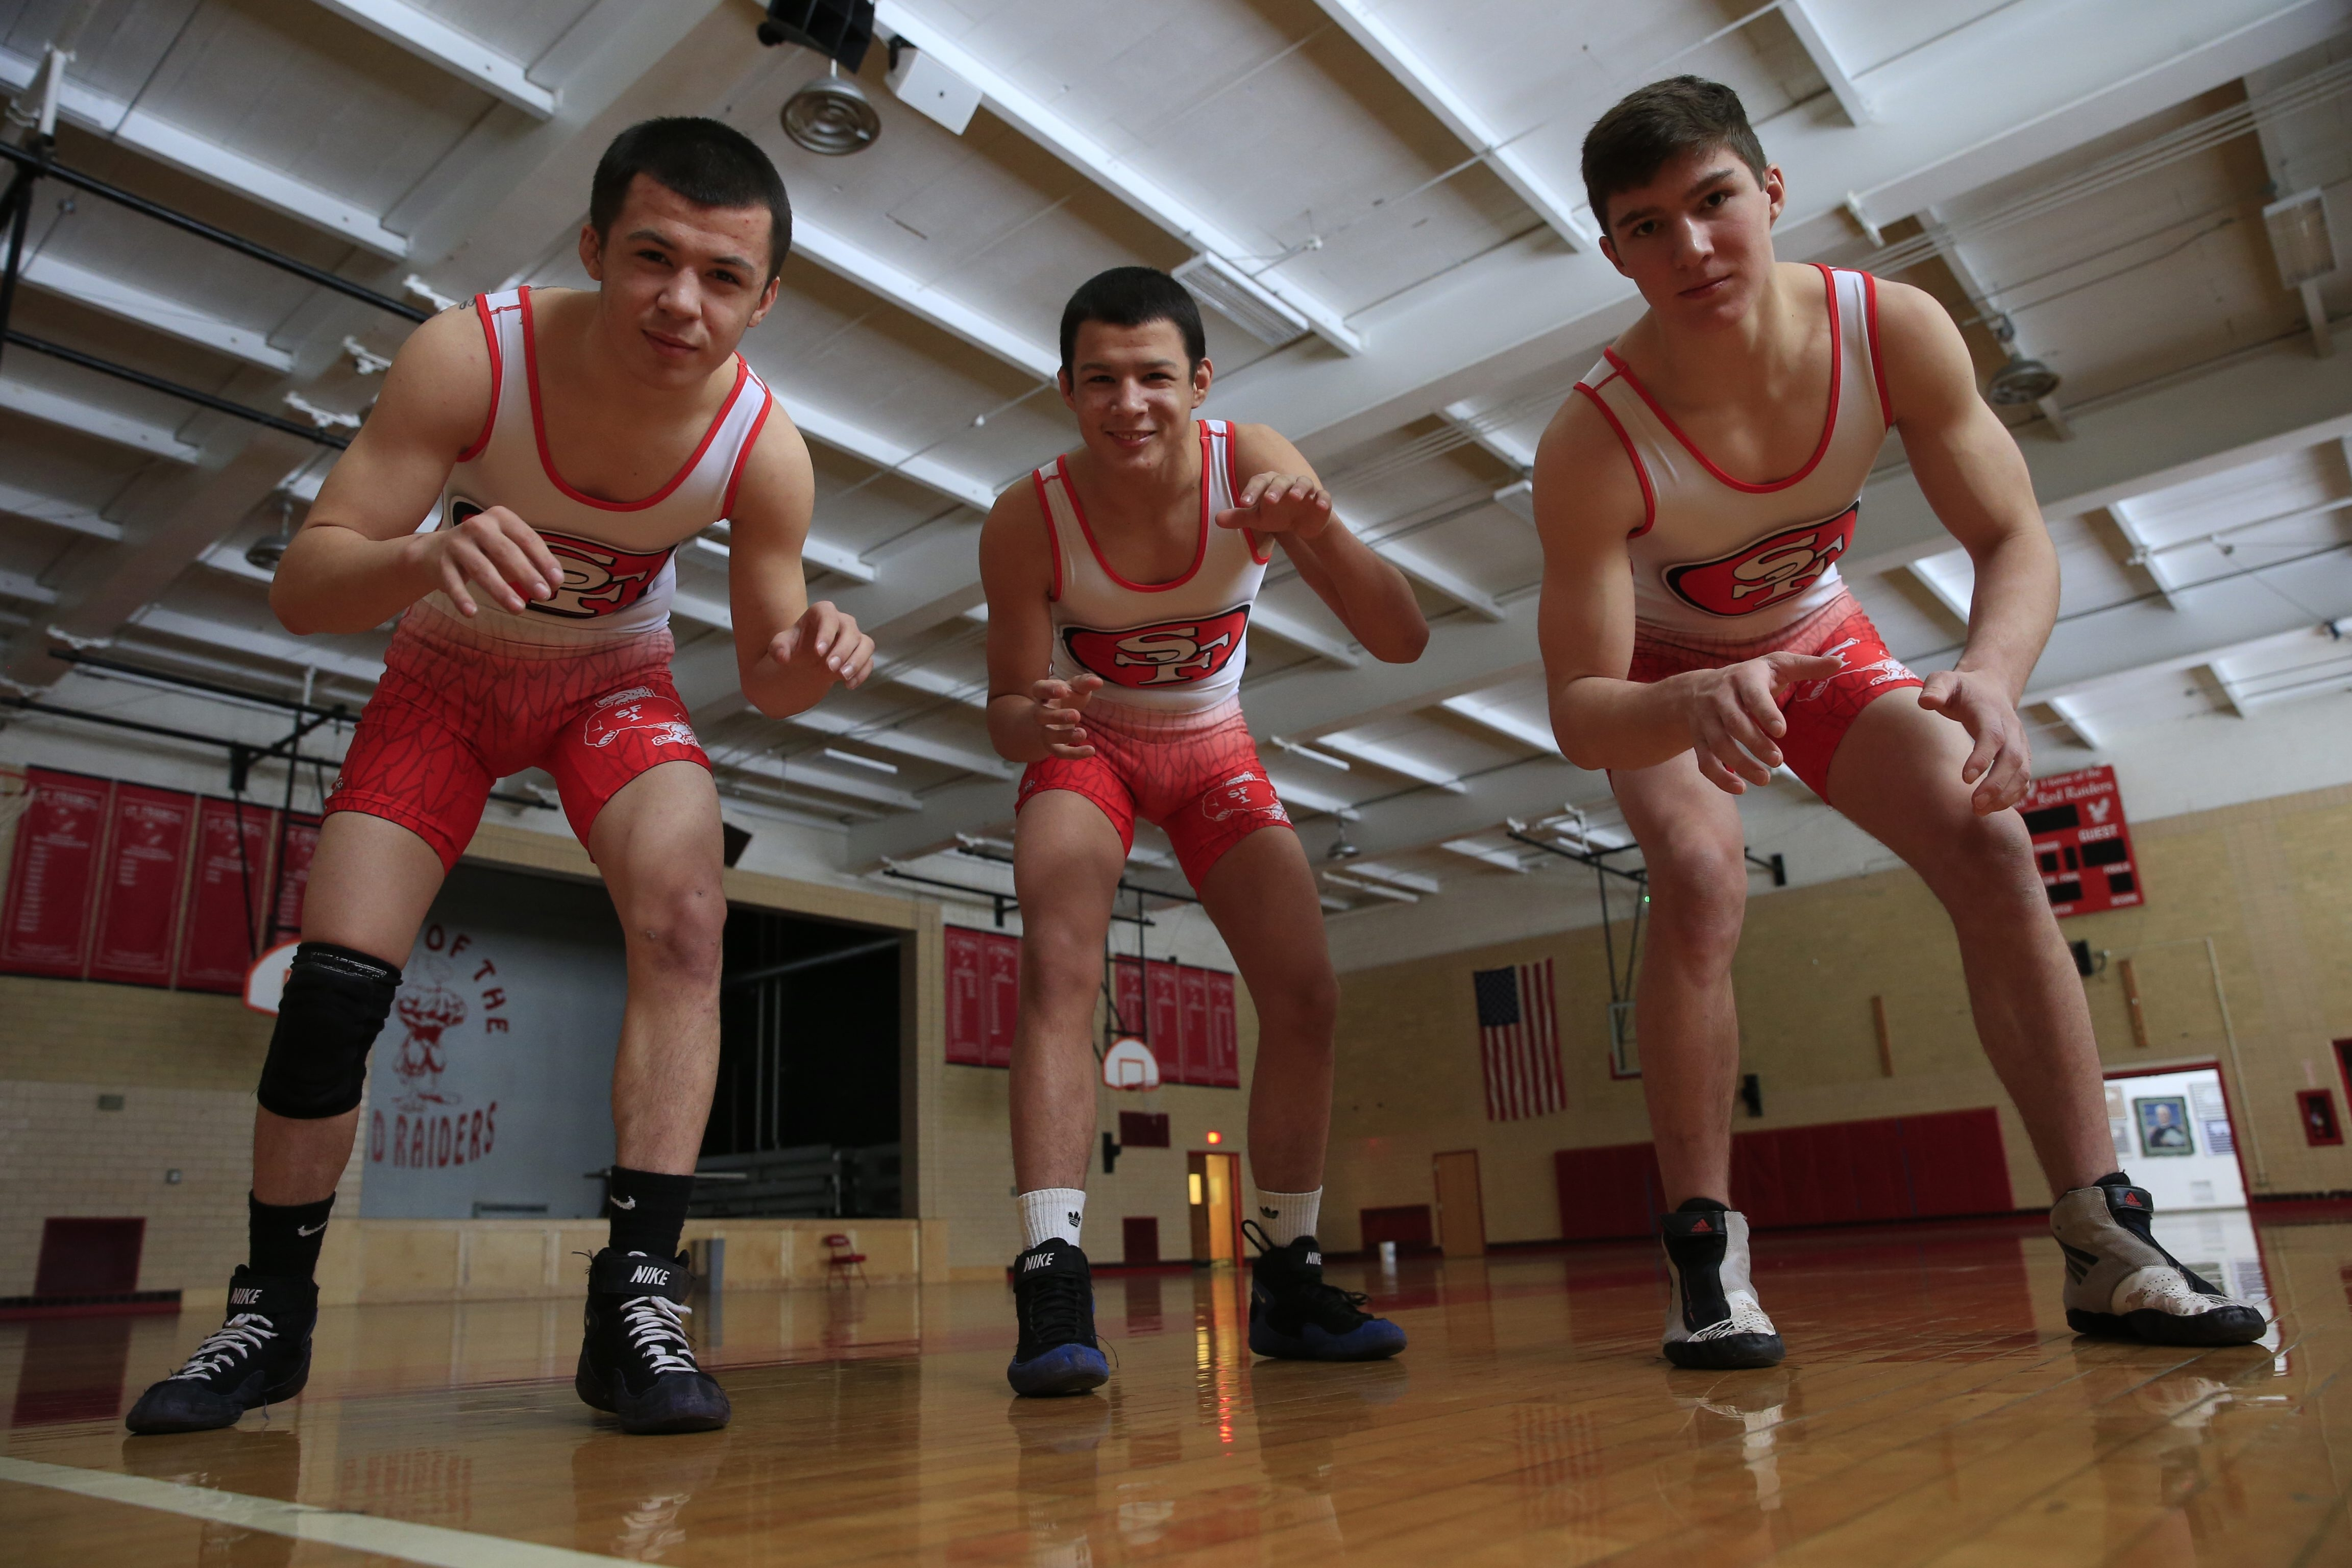 The Eastern States is the next stop for St. Francis' feared threesome of Tito and Hector Colom, and senior Jake Braunscheidel.